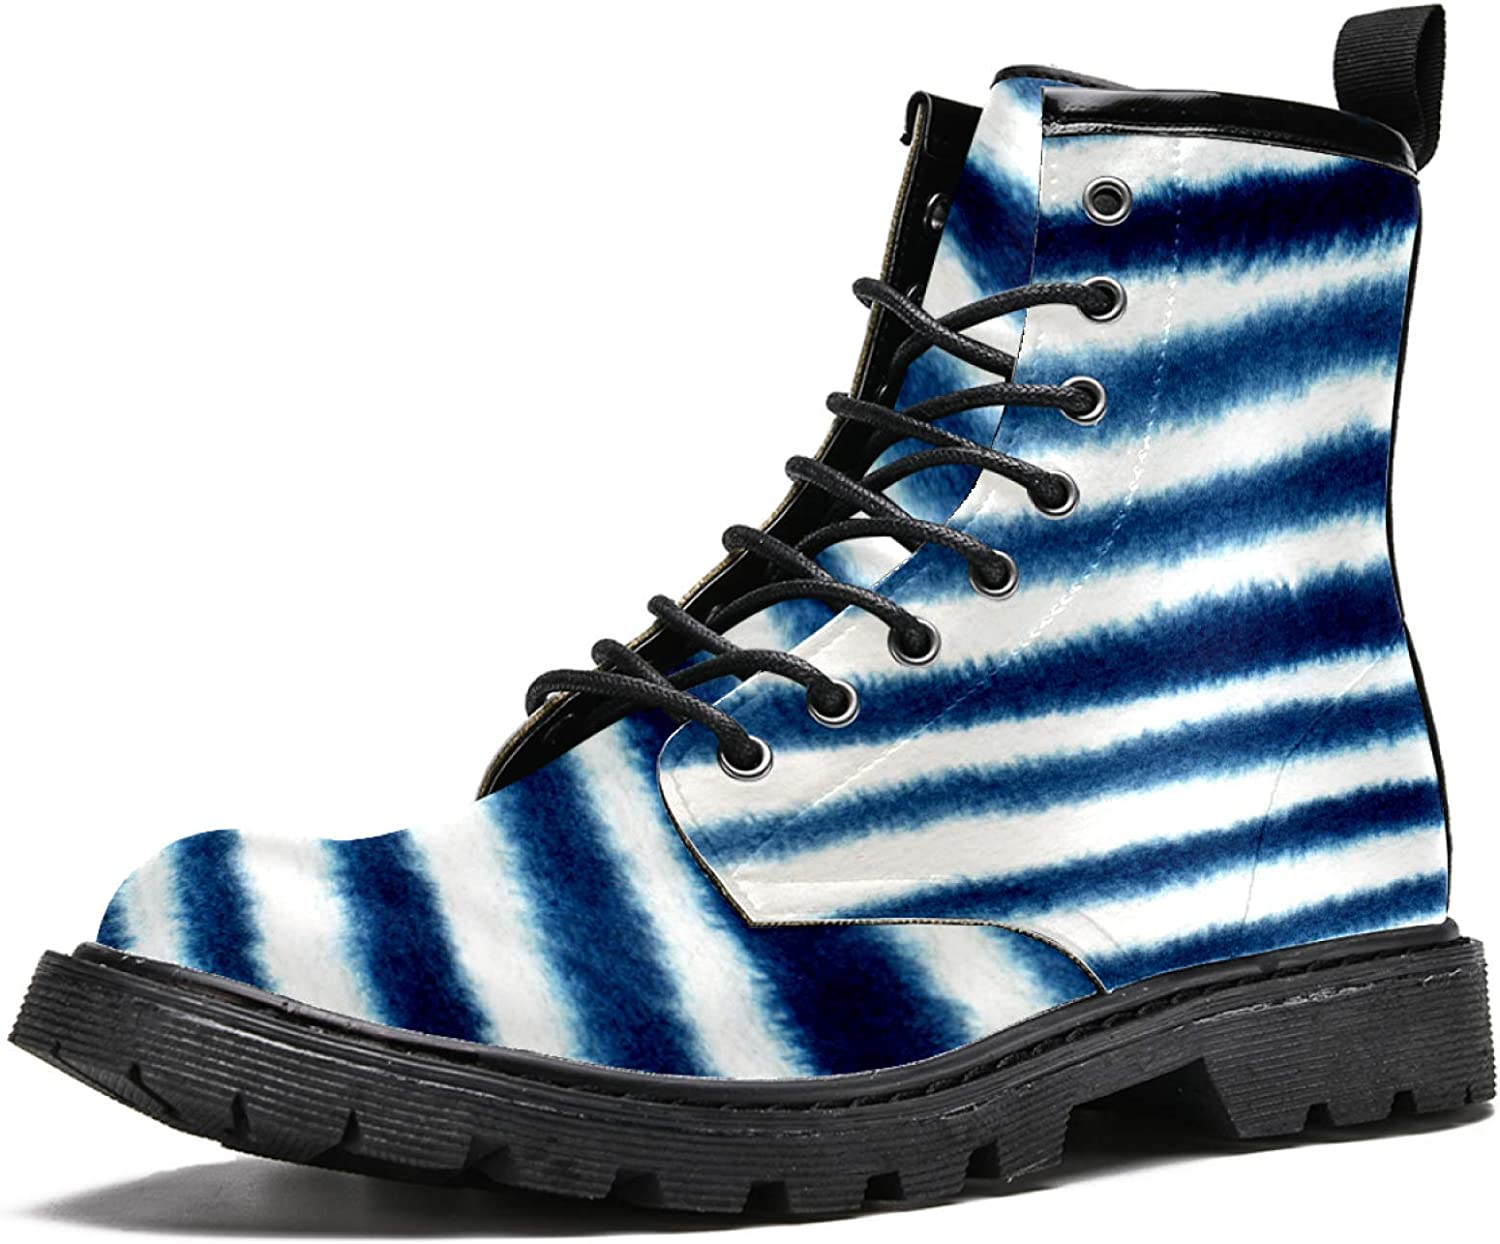 Oklahoma City Mall Womens Boots Outdoor Non Slip Boot Casual Stripes Max 84% OFF Blue